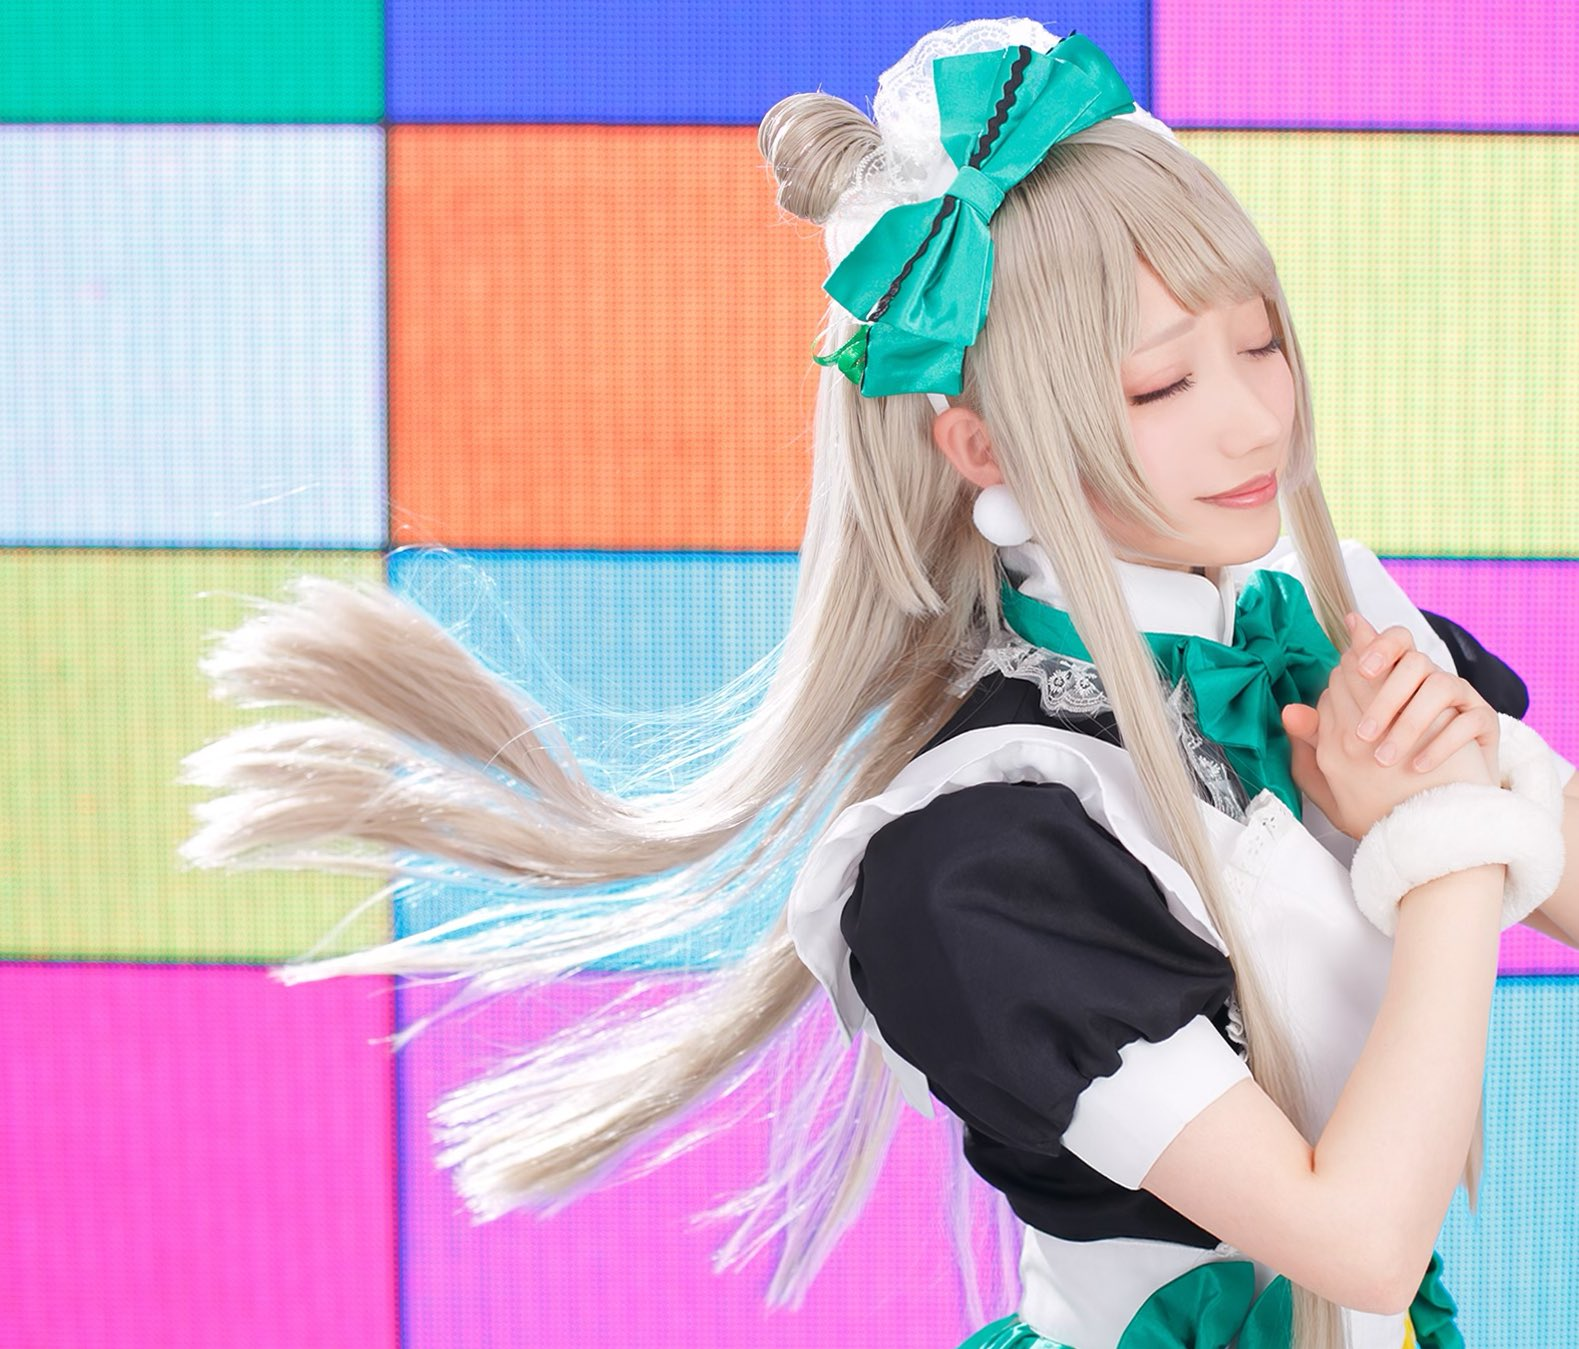 (日本語) 【 WorldCosplay   FEATURE COSPLAYER 】 ☆葵已ねむ さん☆